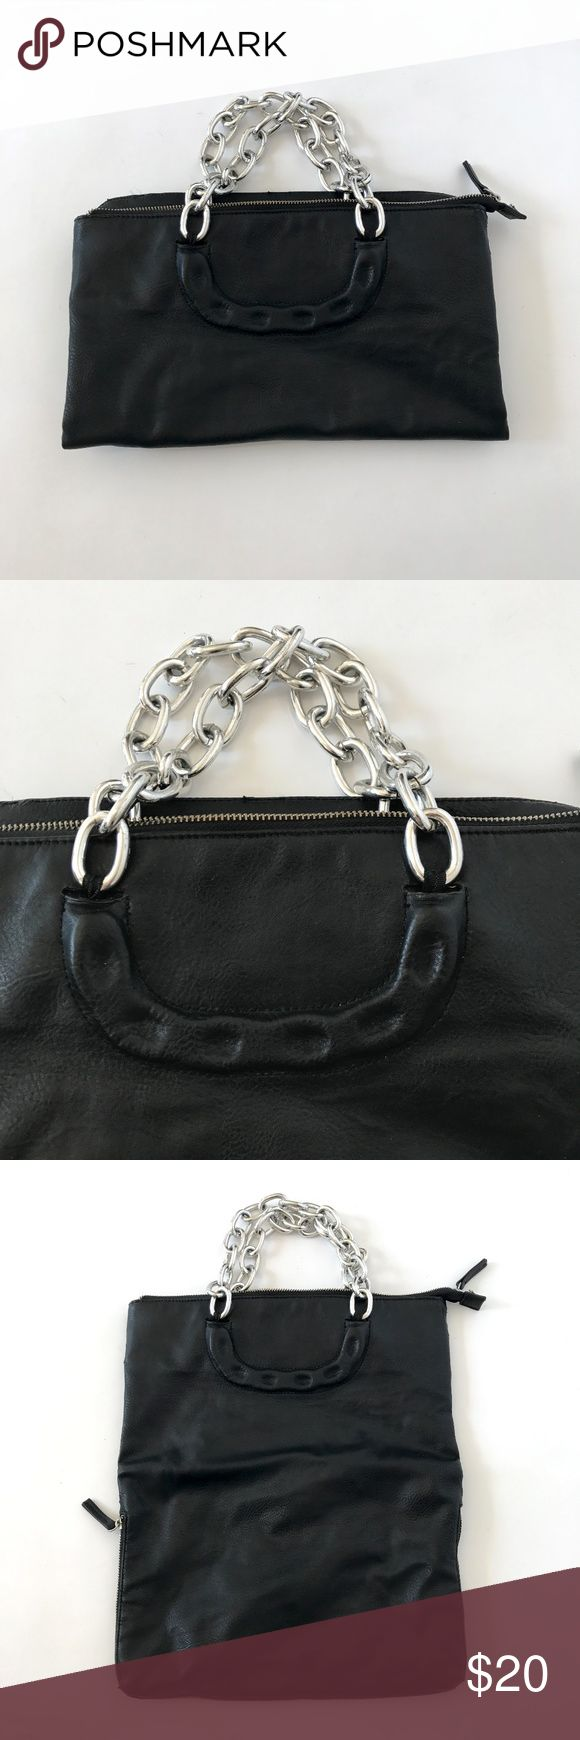 "Deena & Ozzy Black Faux Leather Chain Clutch Bag Deena & Ozzy Black Faux Leather Chain Handbag Oversized Clutch Silver Purse Big  Oversized handbag/clutch with detachable strap. Chunky silver shoulder chains. Top zipper closure. Bag can be worn unfolded, or folded into a clutch. Bottom zipper expands the handbag.  Good condition. Some peeling around the edges/seams of the bag.  16"" H (can be folded over) x 13"" W x .5""D  Please check out my Trixy Xchange Closet for more handbag Deena & Ozzy…"